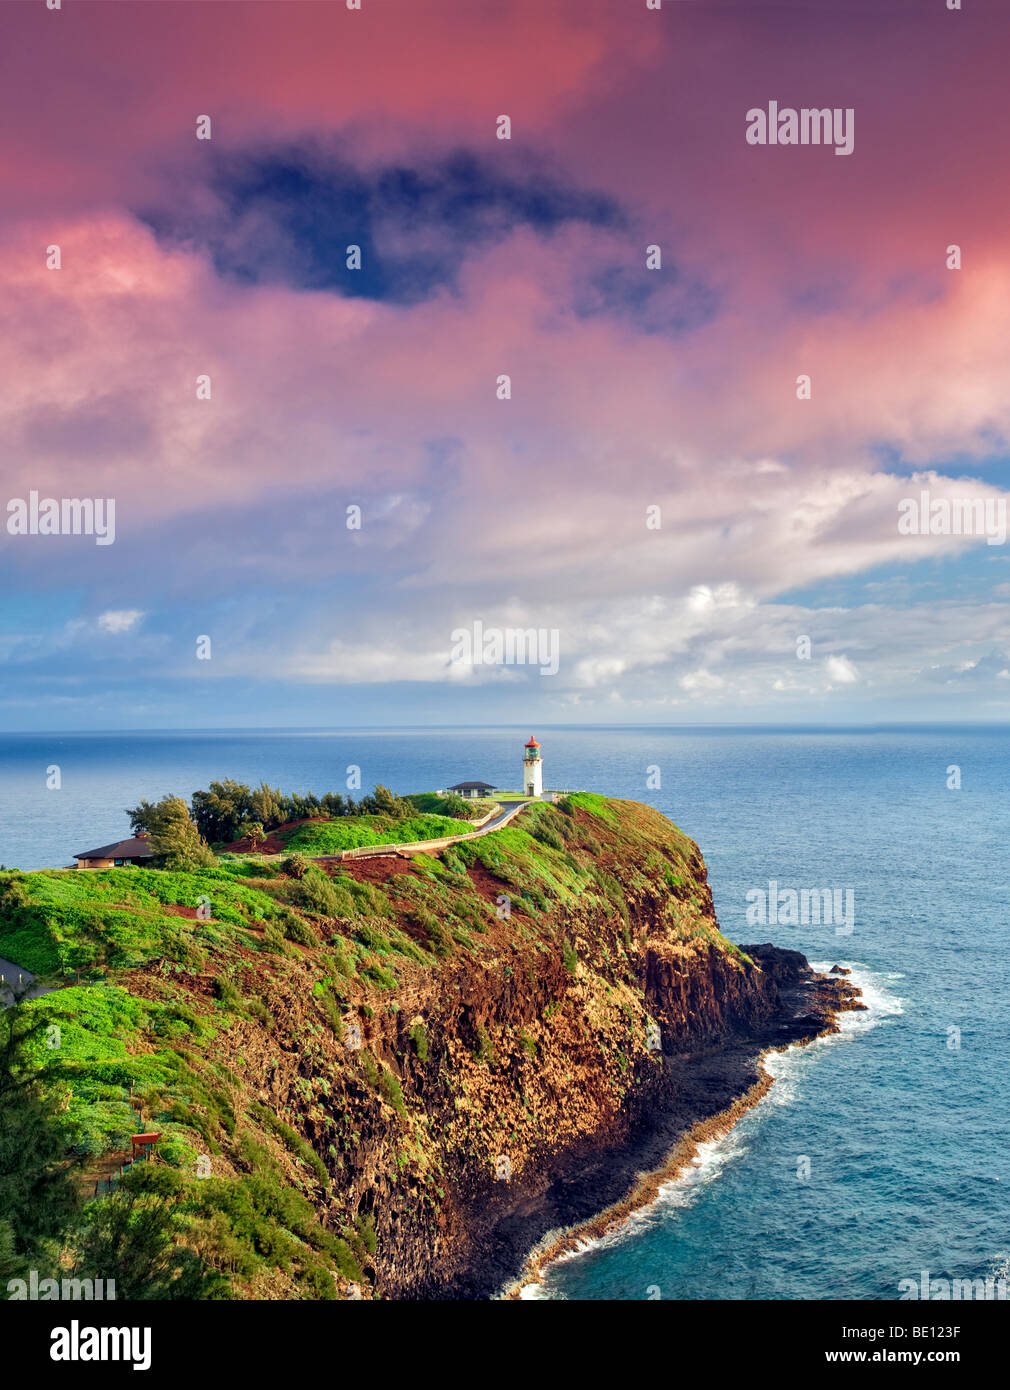 Kilauea Lighthouse. Kilauea Point National Wildlife Refuge, Kauai, Hawaii. - Stock Image